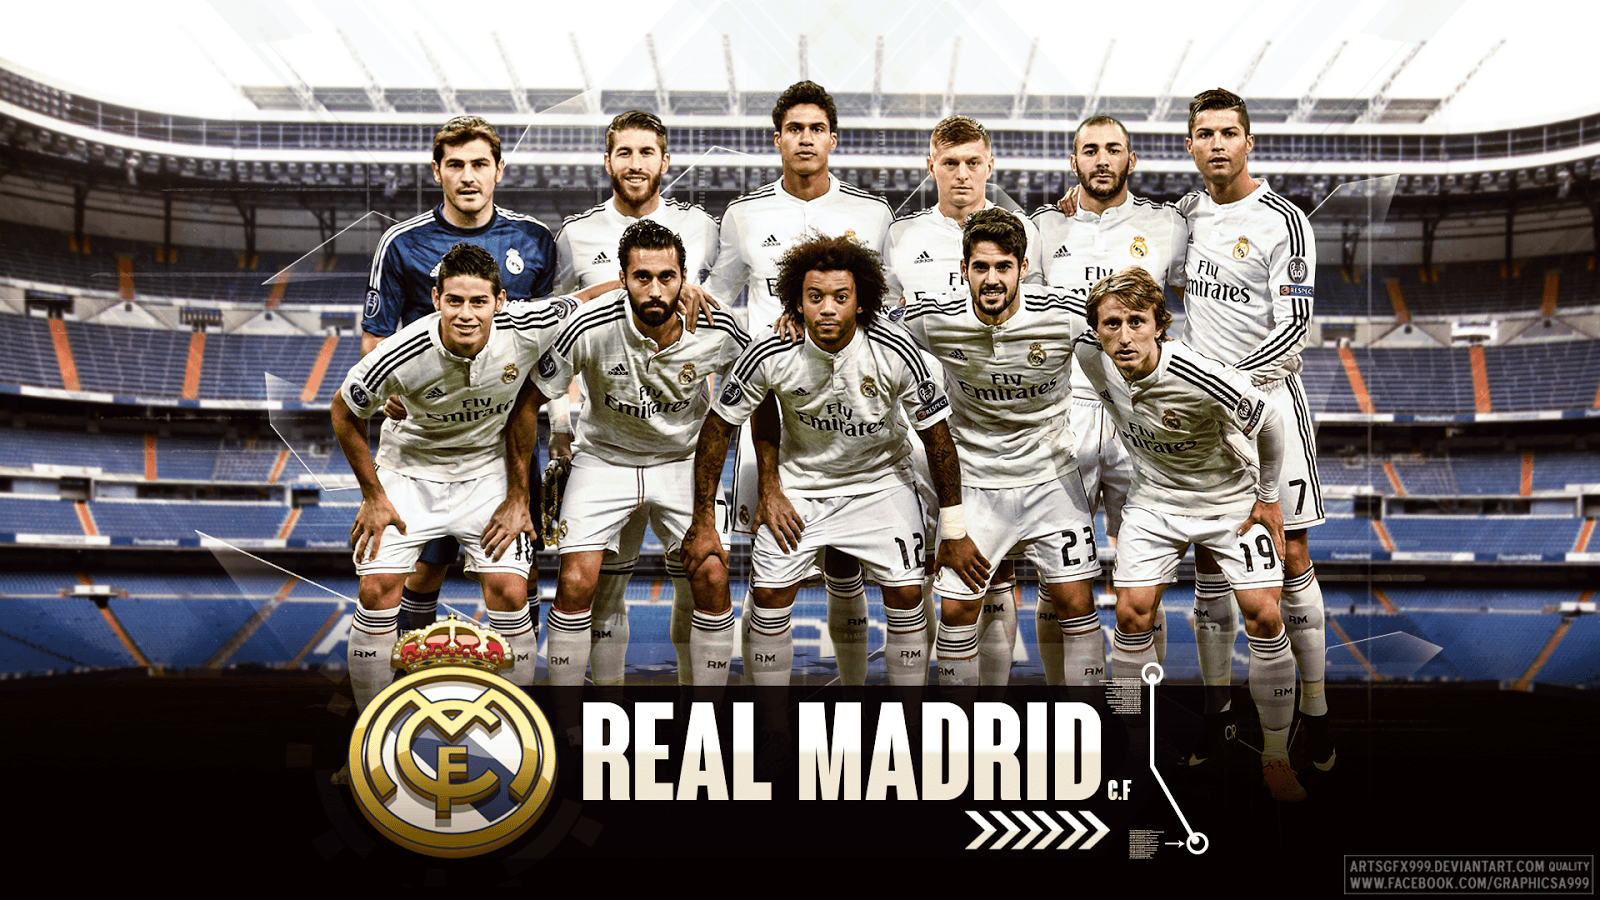 Real madrid wallpapers full hd 2017 wallpaper cave - Real madrid pictures wallpapers 2017 ...